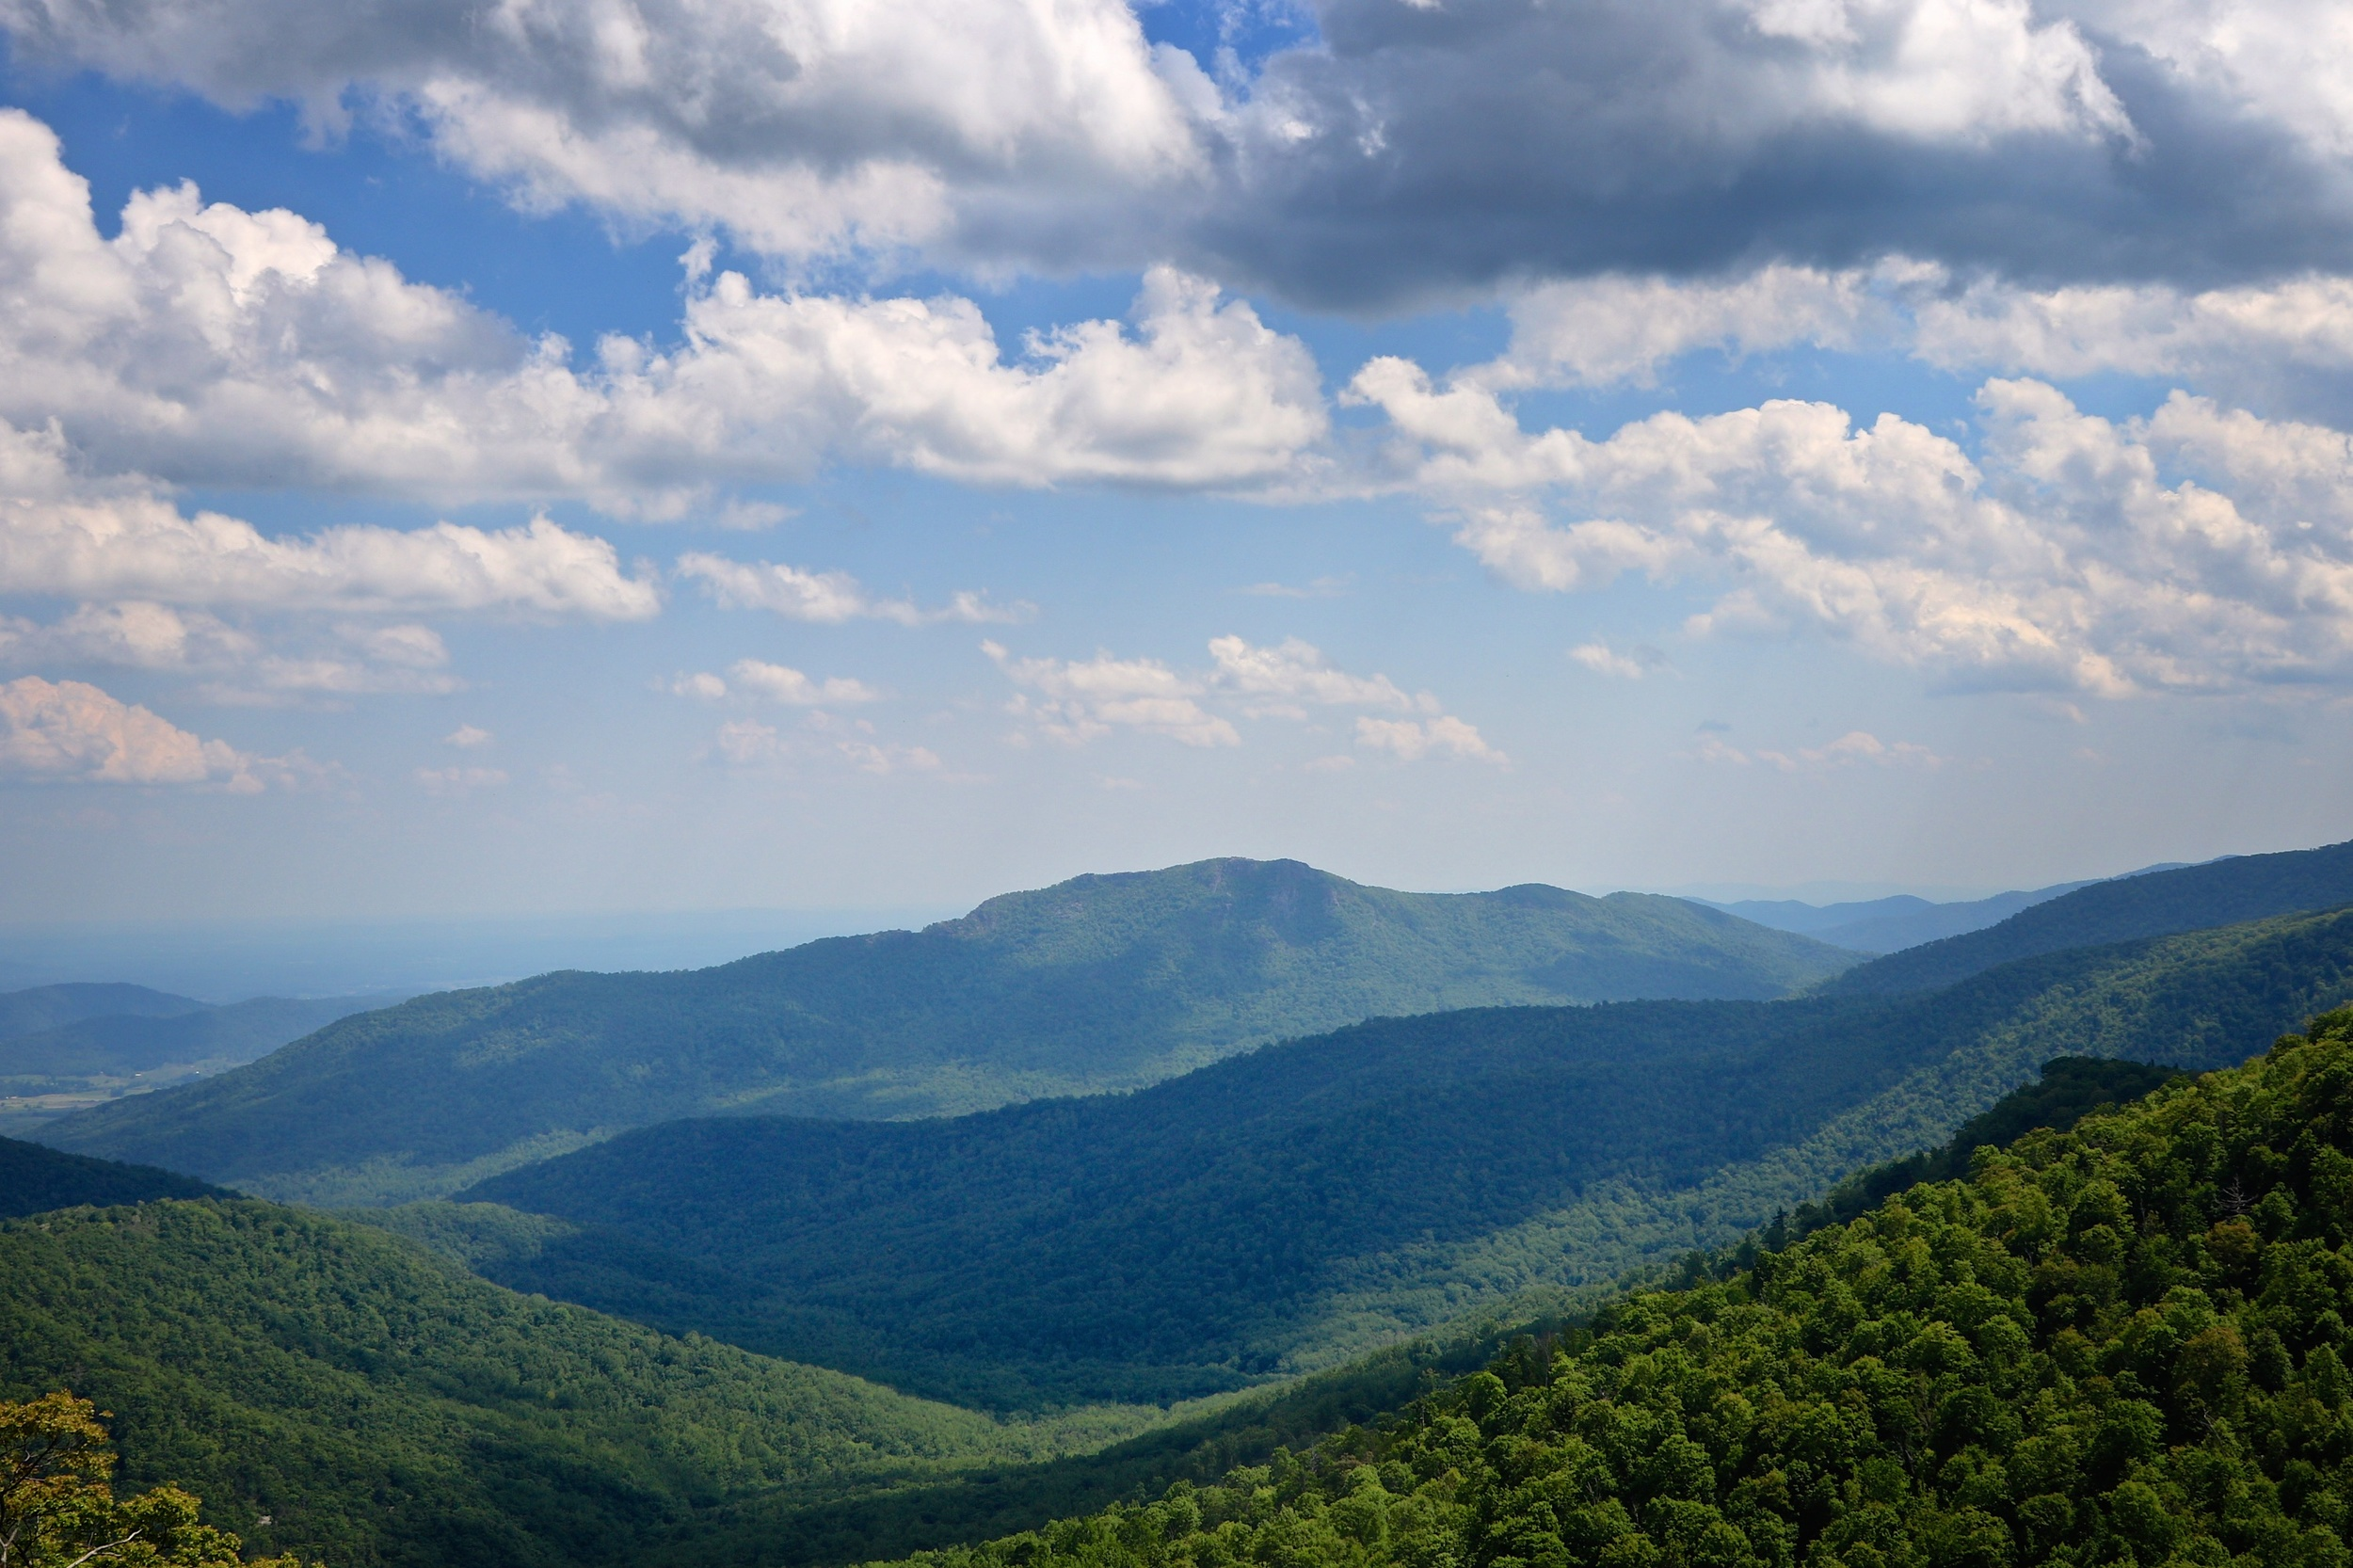 A whole mountain view of Old Rag, from Skyline Drive in Shenandoah National Park.